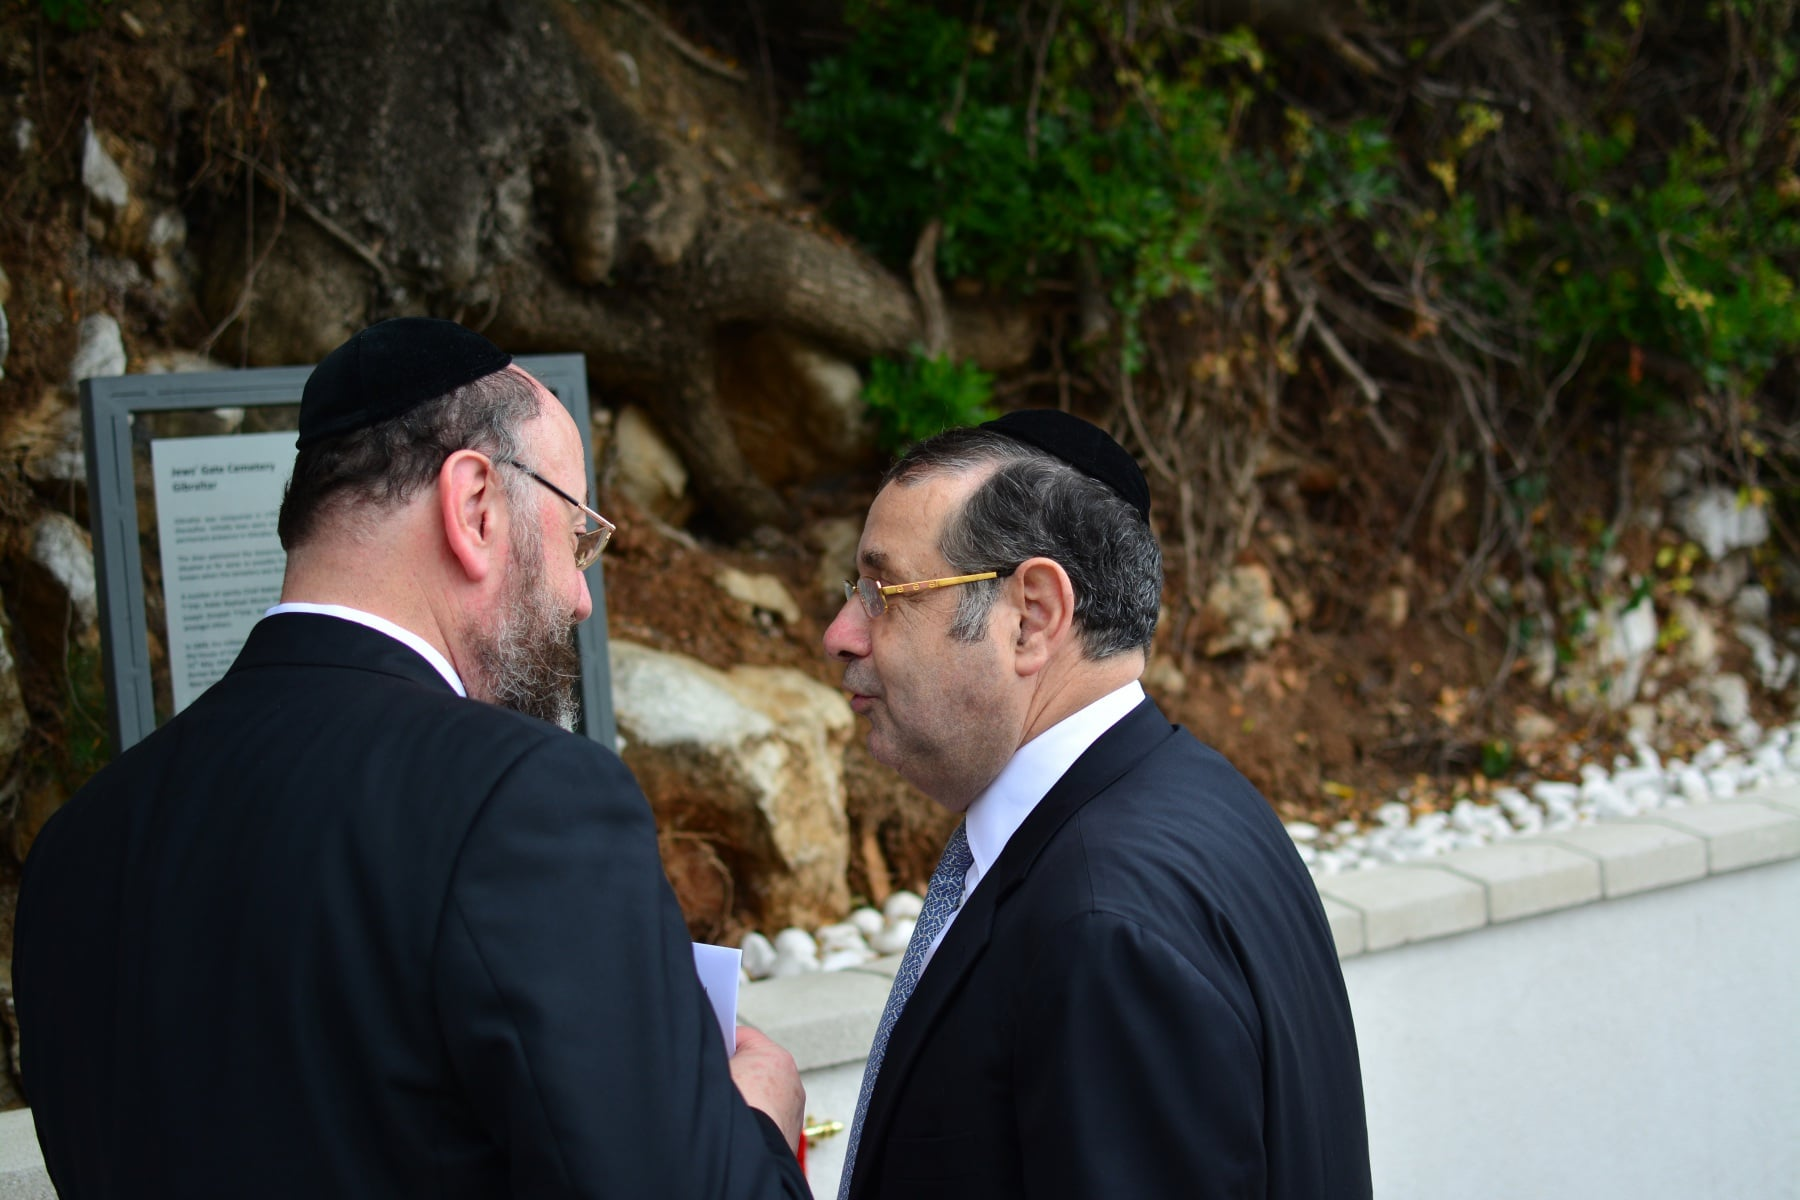 Chief Rabbi of Commonwealth at Jews Gate Cemetery opening